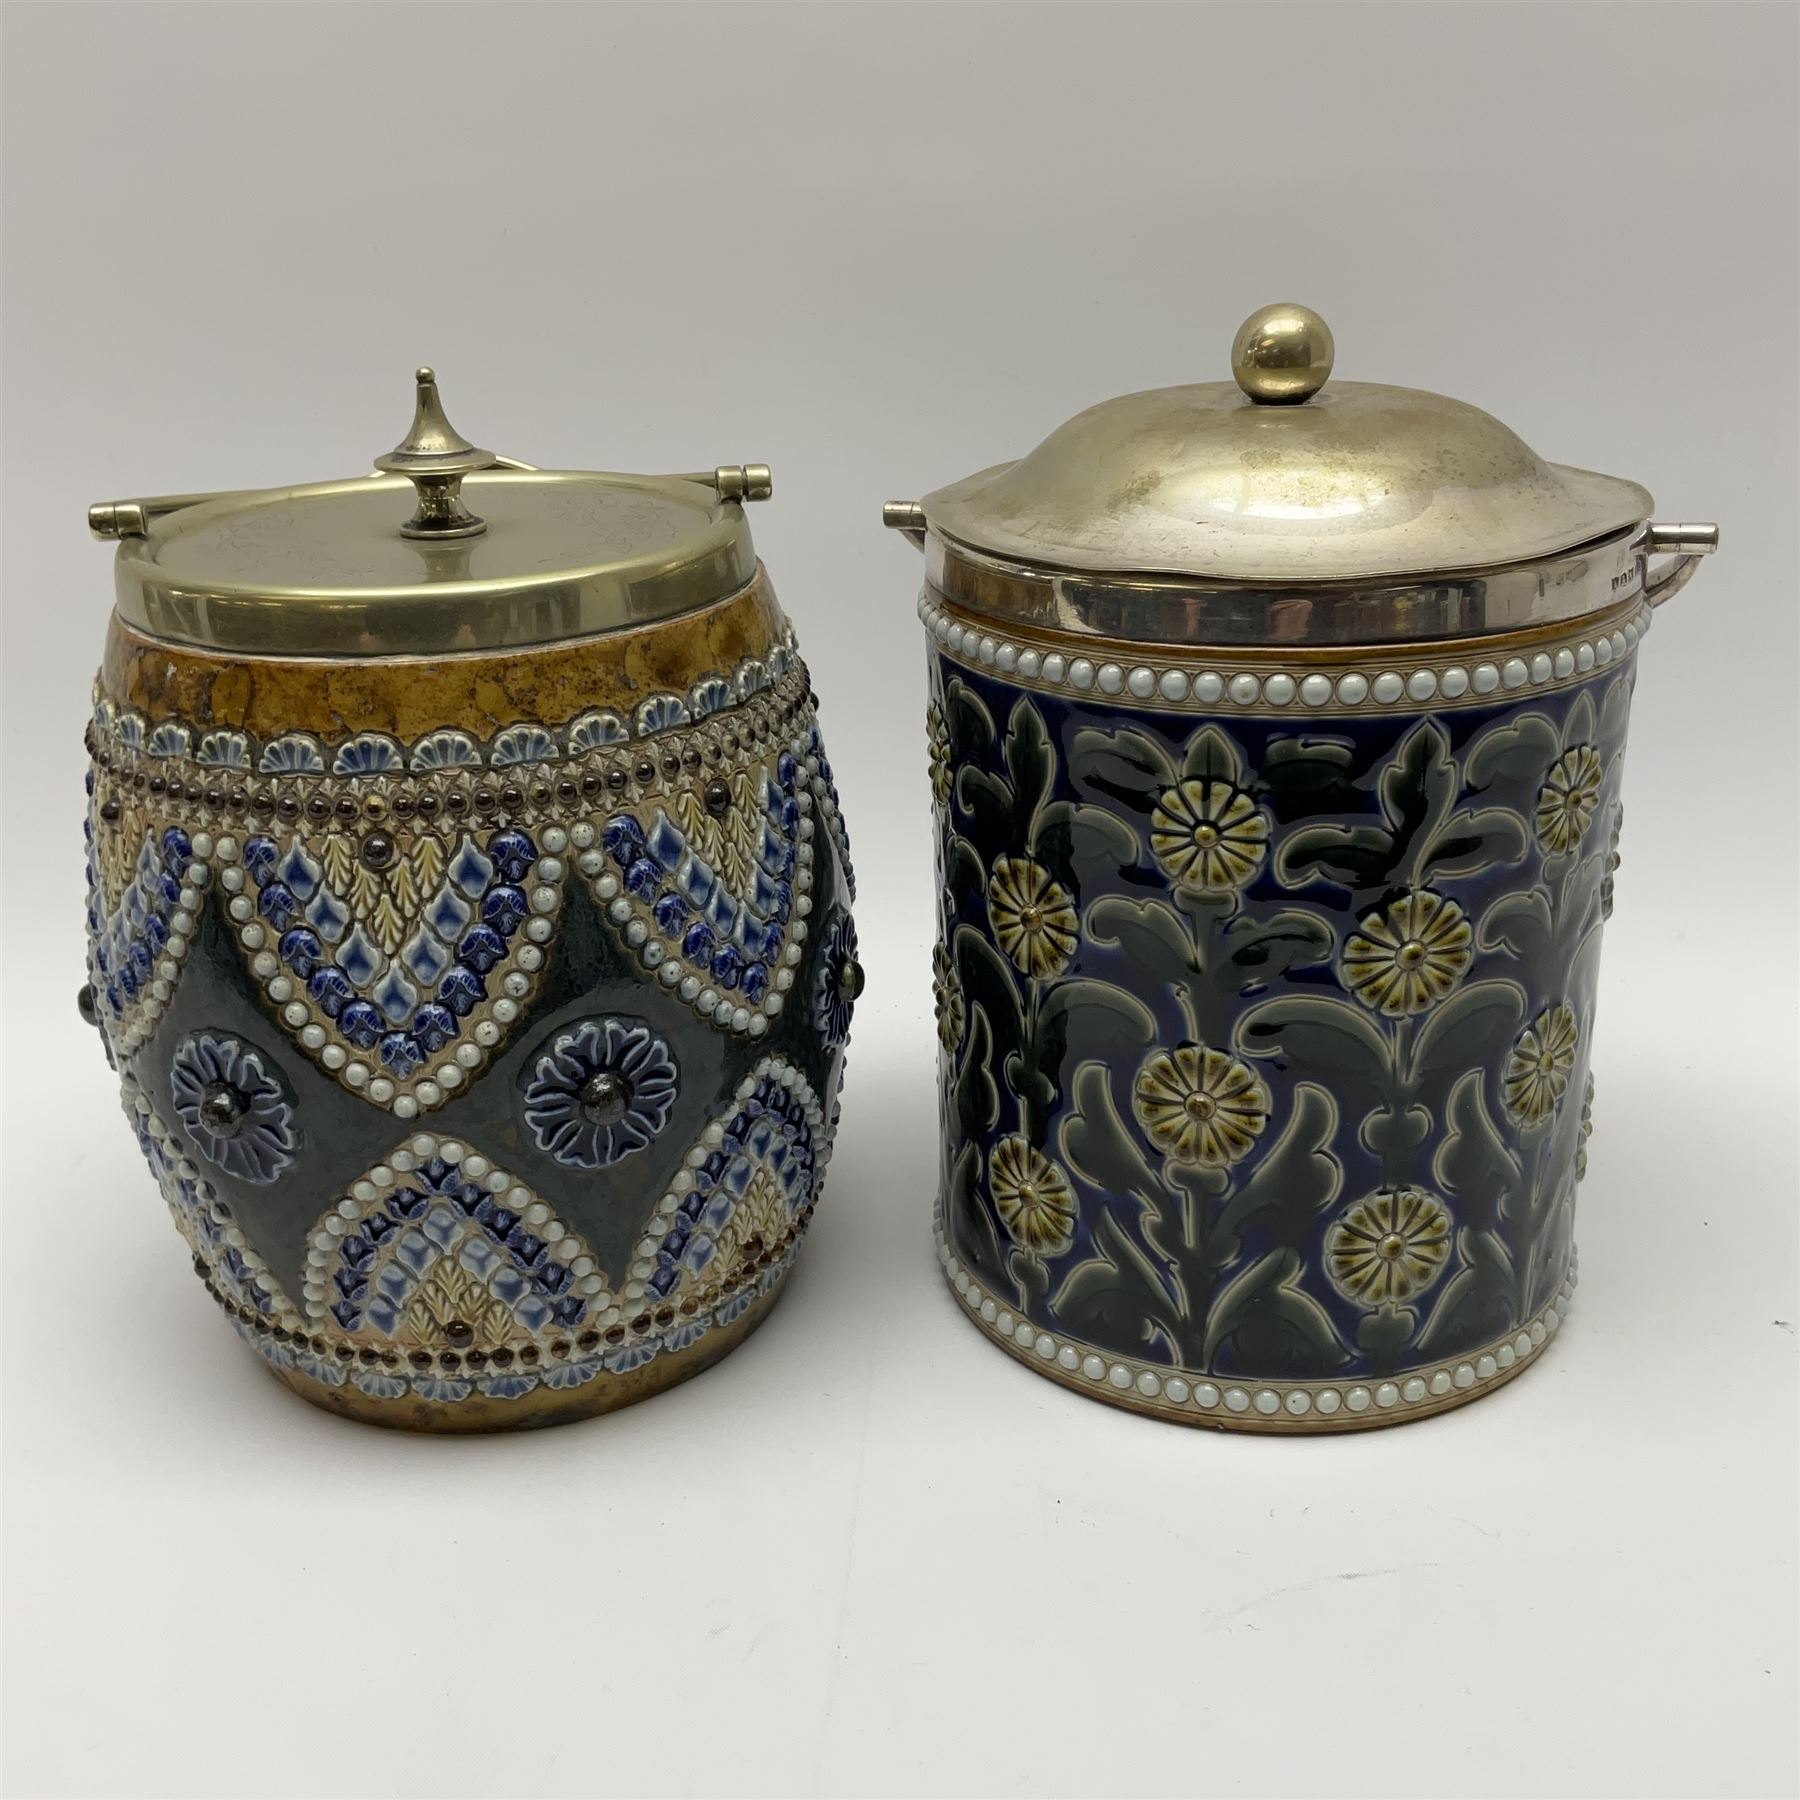 A 19th century Doulton Lambeth stoneware tobacco jar with a silver plate lid - Image 5 of 5